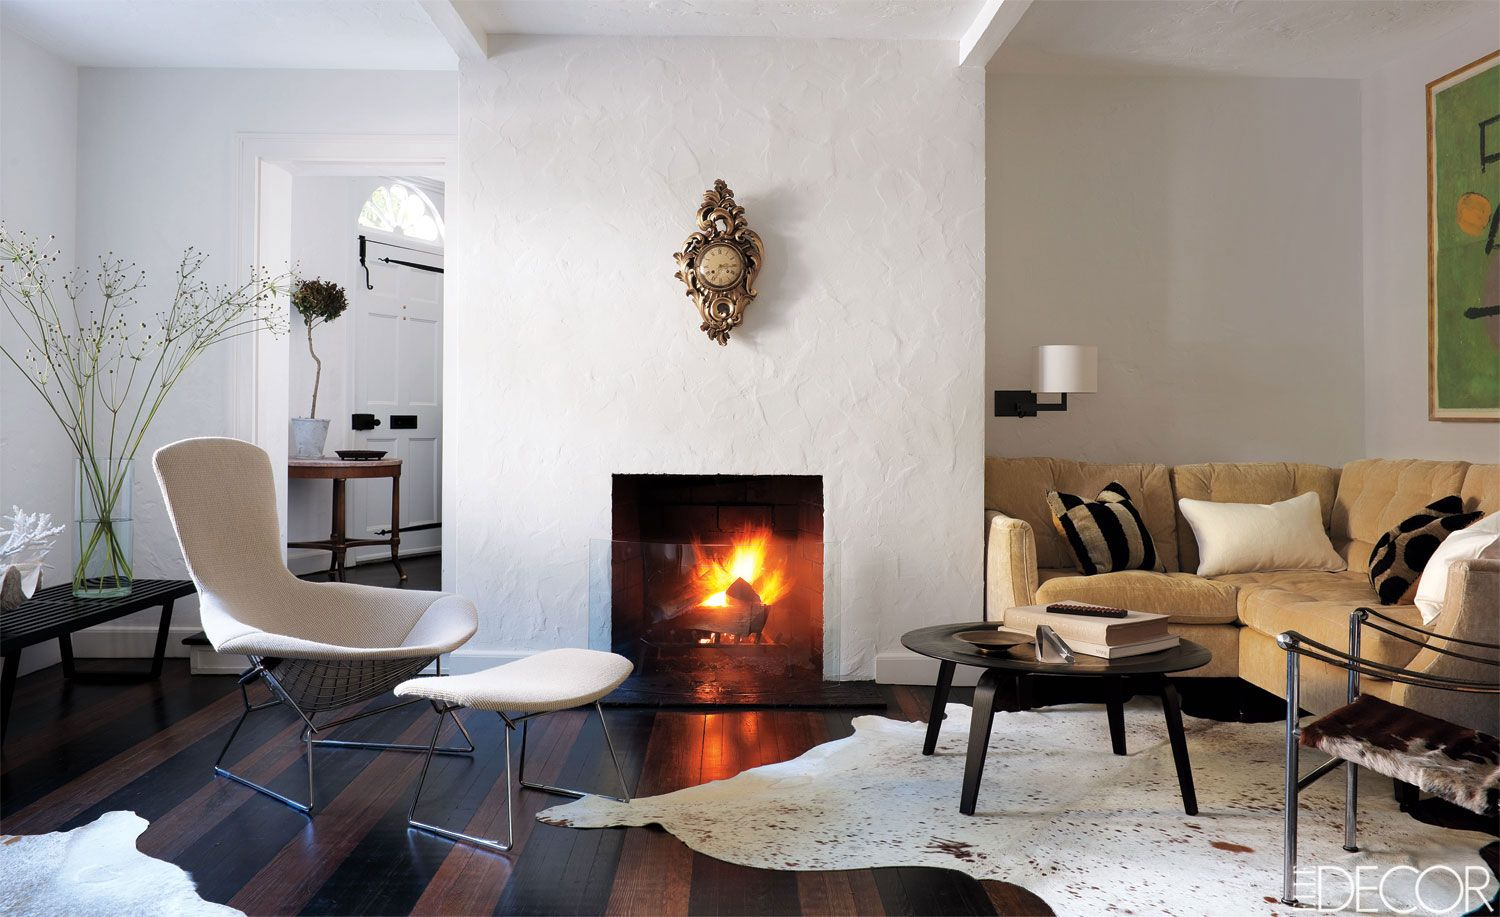 Design Fireplace Decorating Ideas 21 unique fireplace mantel ideas modern designs